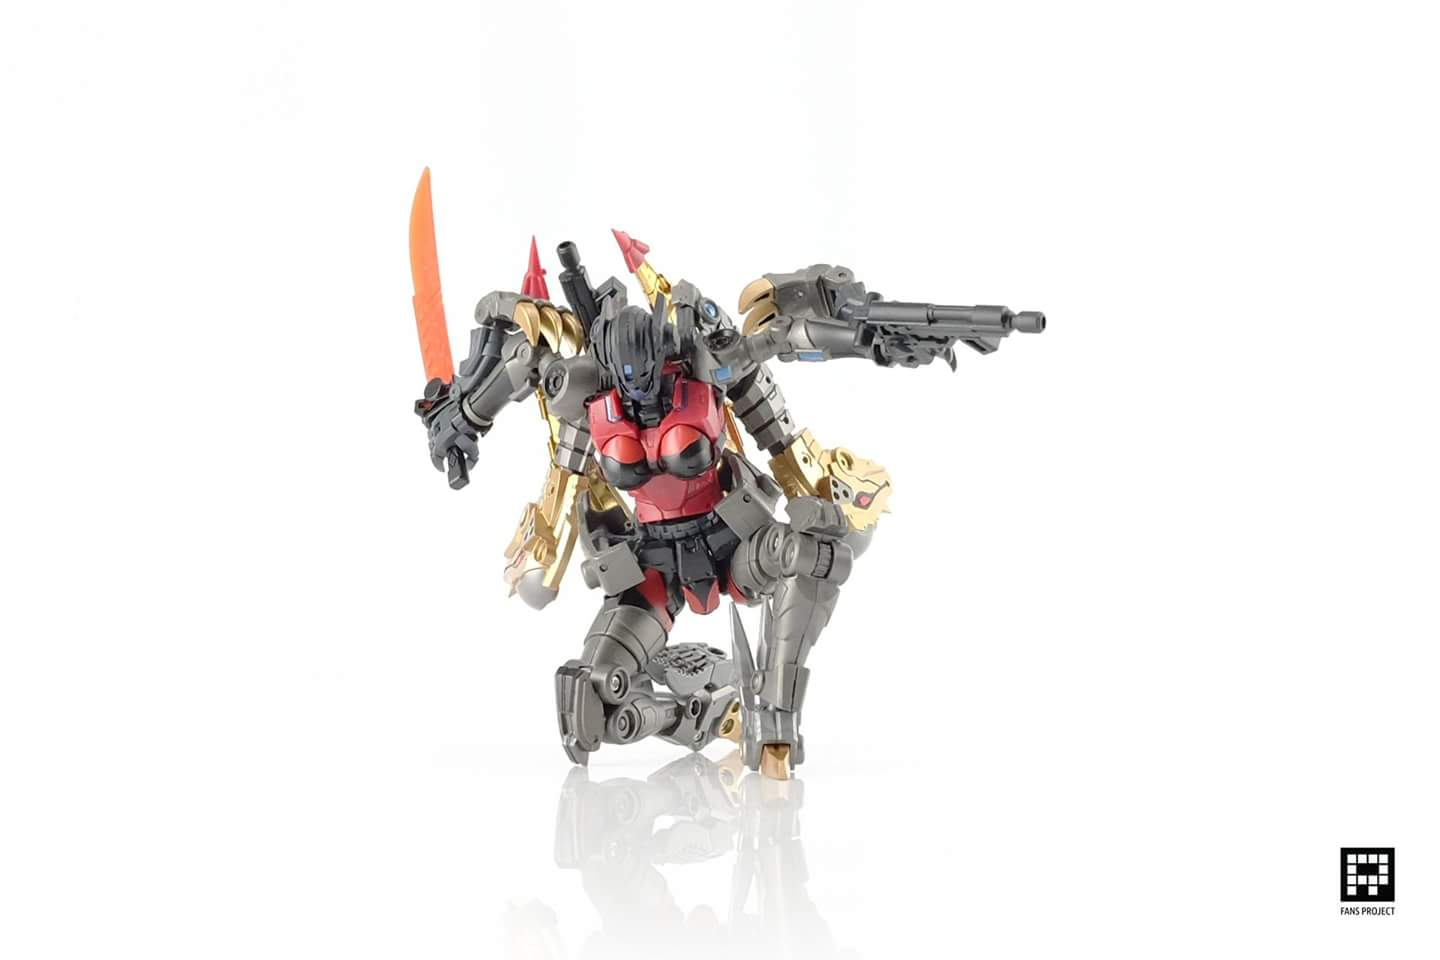 [FansProject] Produit Tiers - Jouets LER (Lost Exo Realm) - aka Dinobots - Page 3 On3Y3u5D